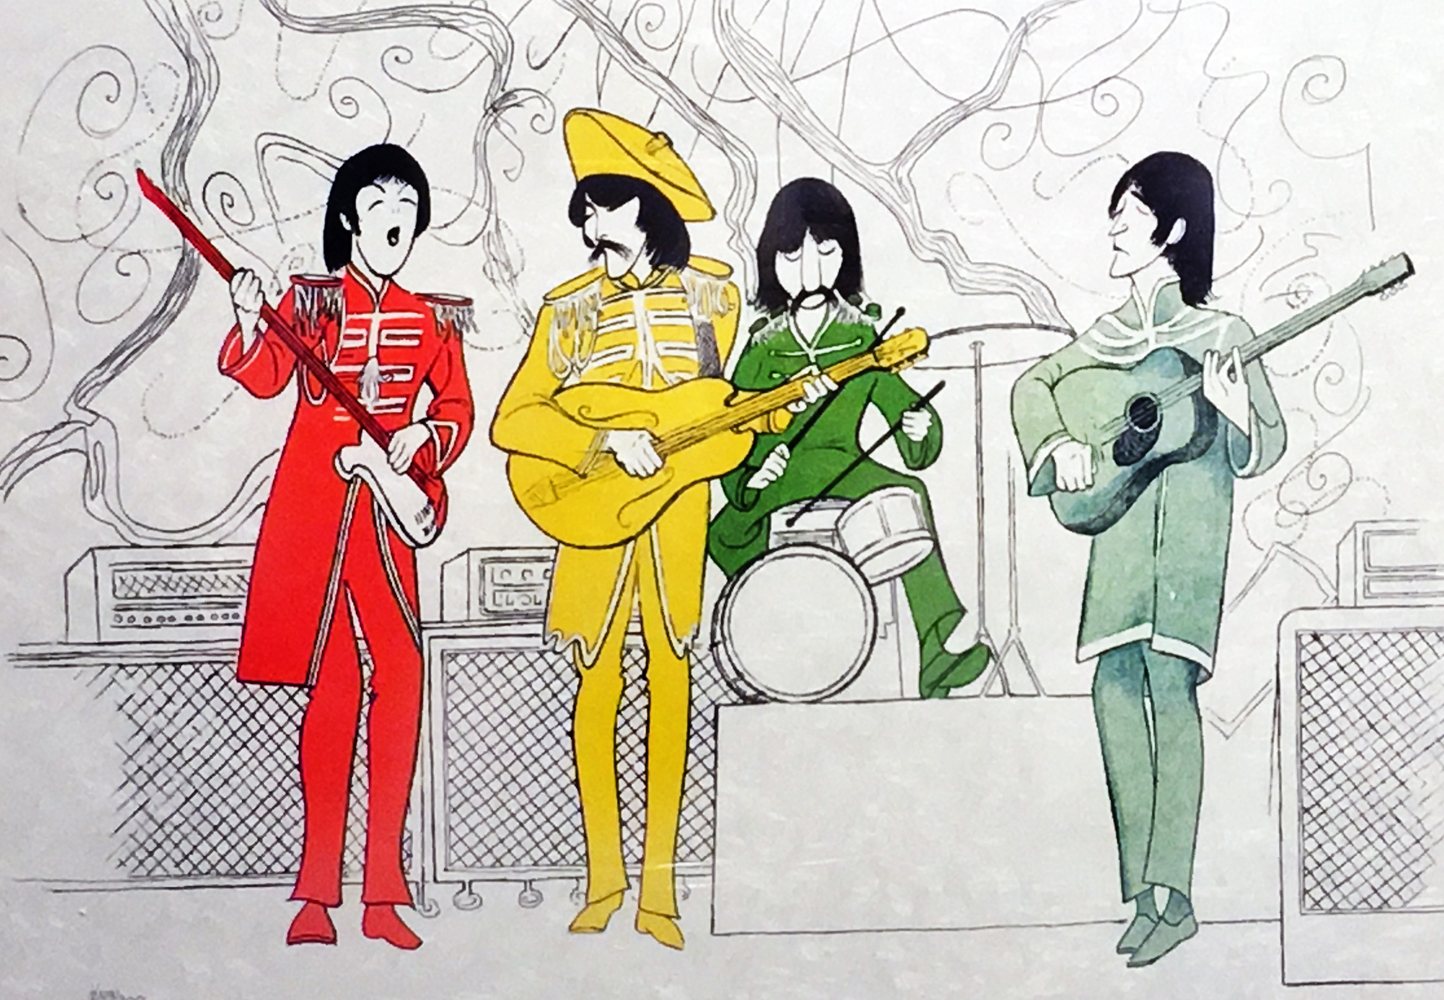 Sgt. Pepper (Beatles) 2002